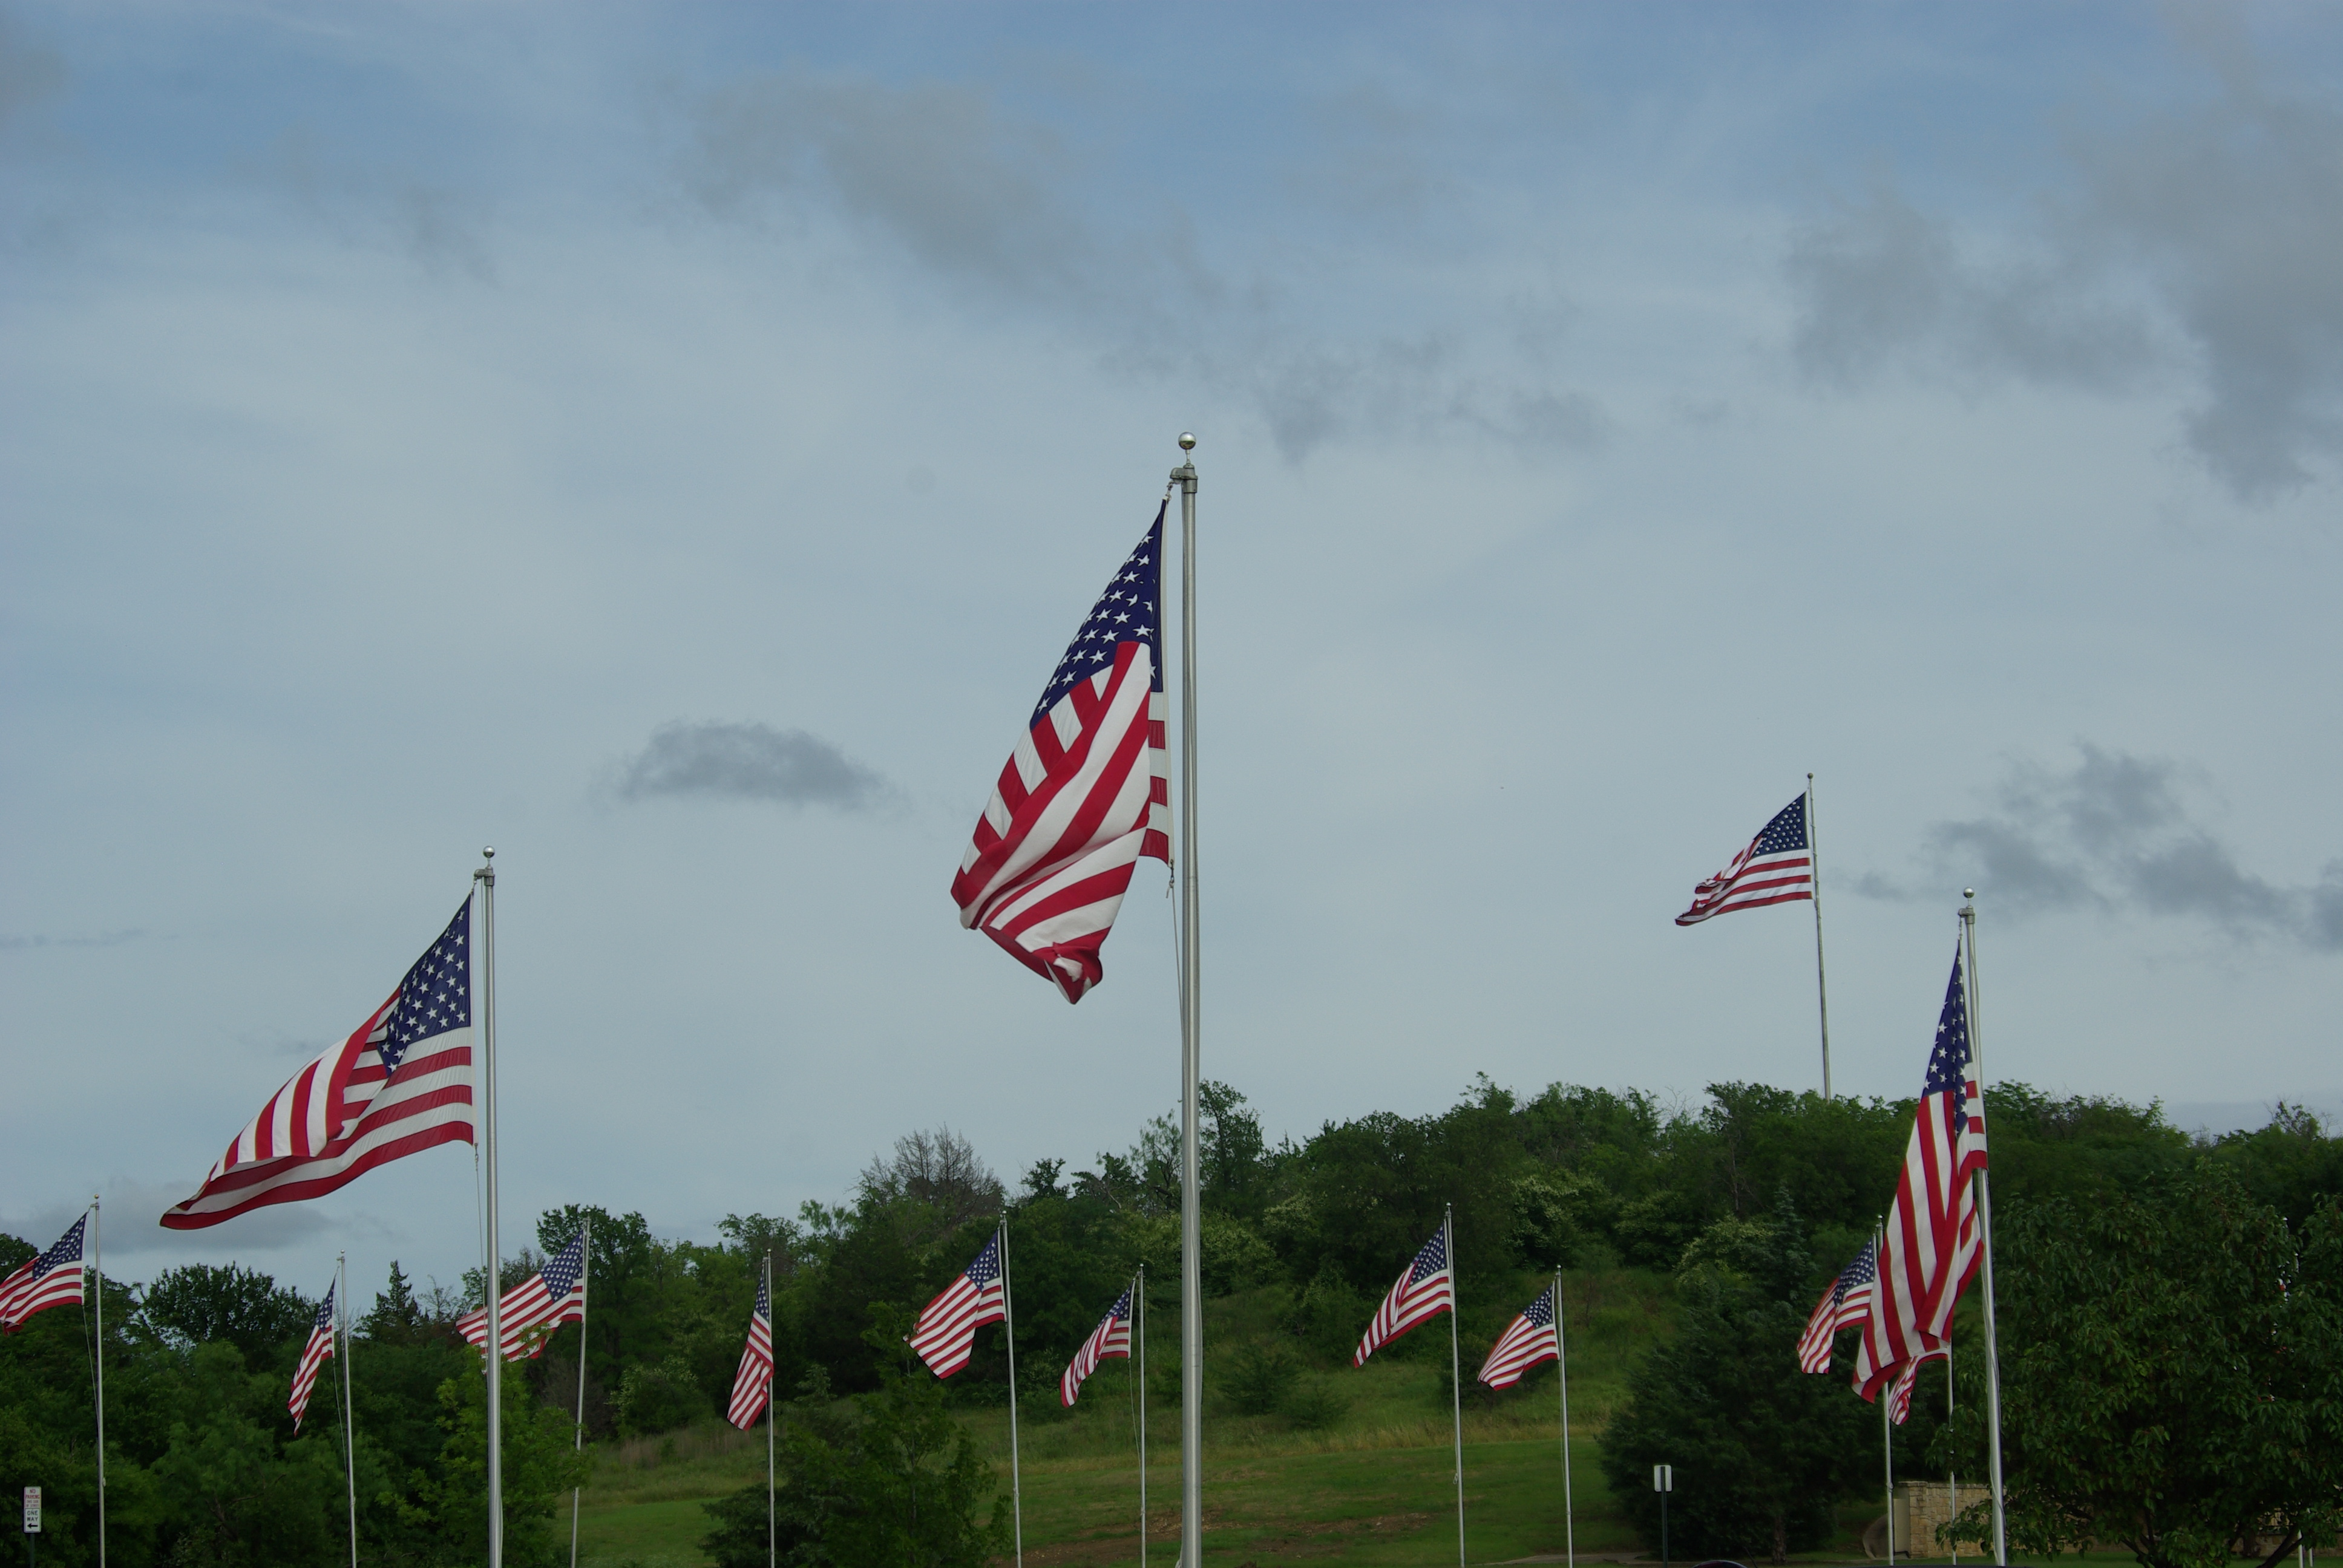 U.S. flags flying at the Dallas-Fort Worth National Cemetery, for Memorial Day 2015. Photo by Ed Darrell. Please use.